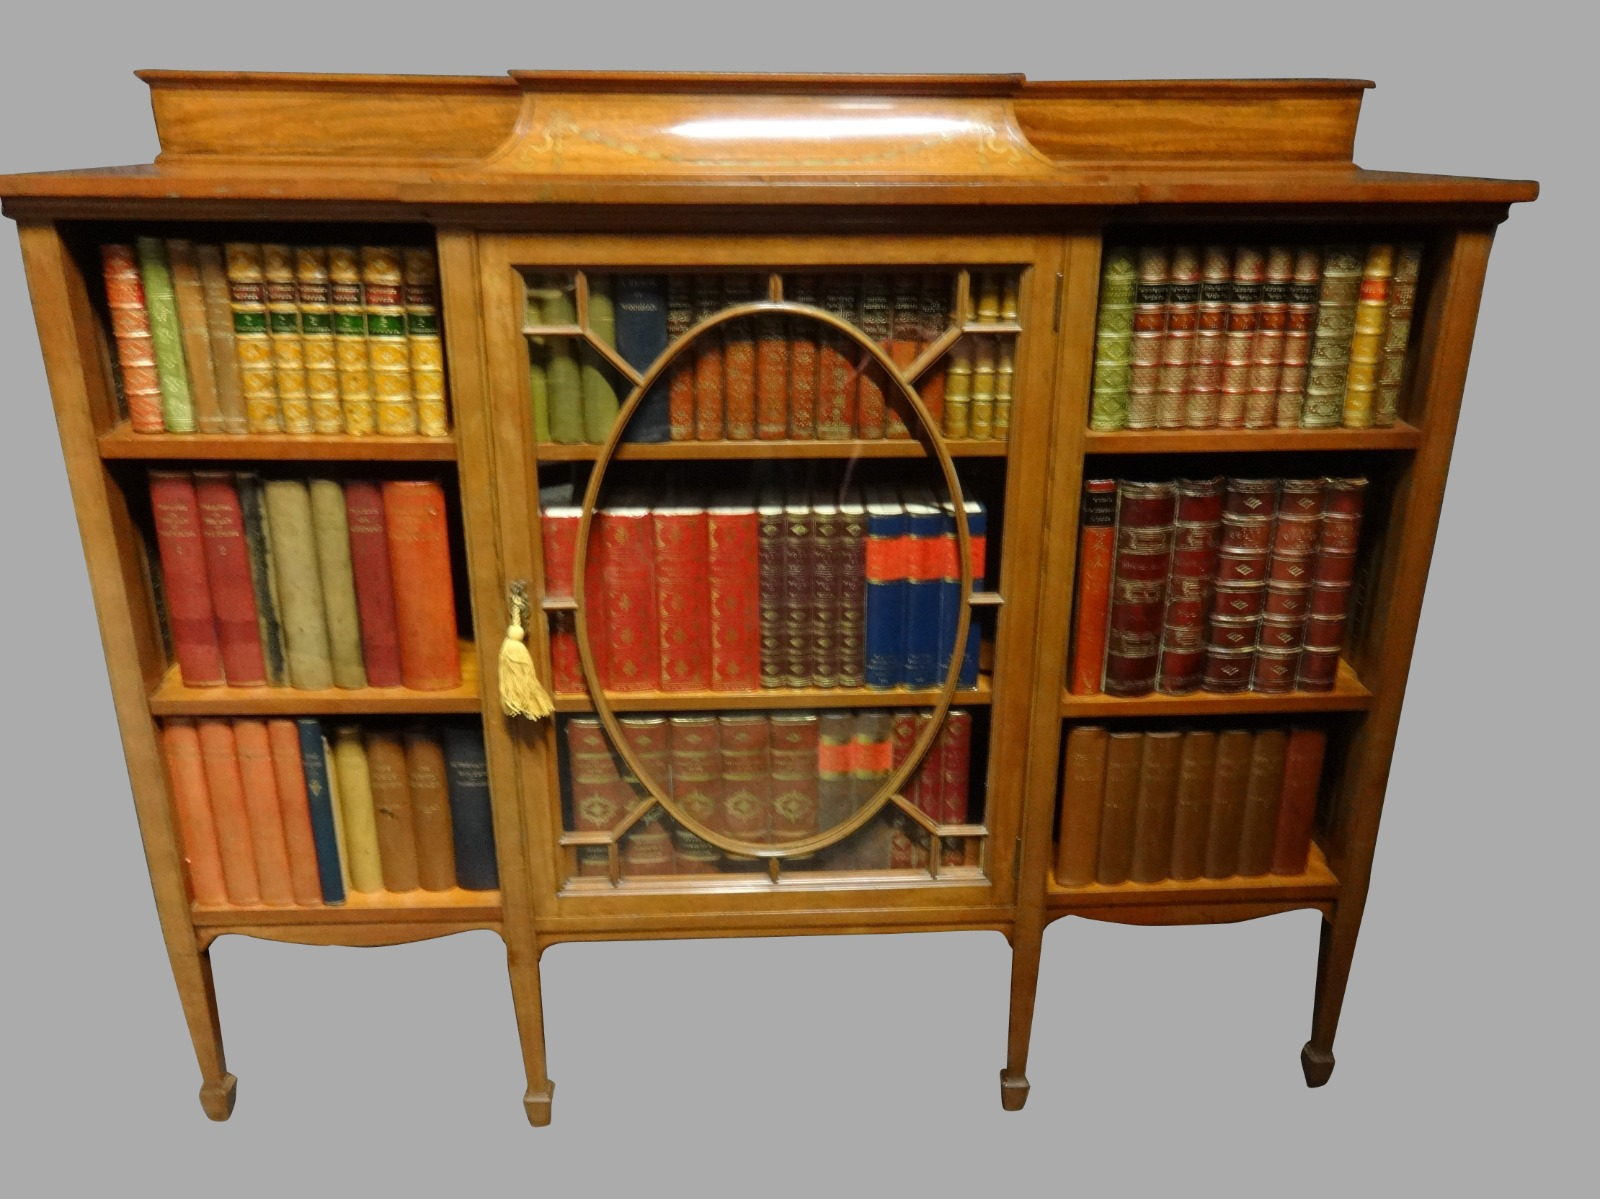 Top Quality Inlaid Satinwood Adjustable Bookcase C.1910 (1 of 1)